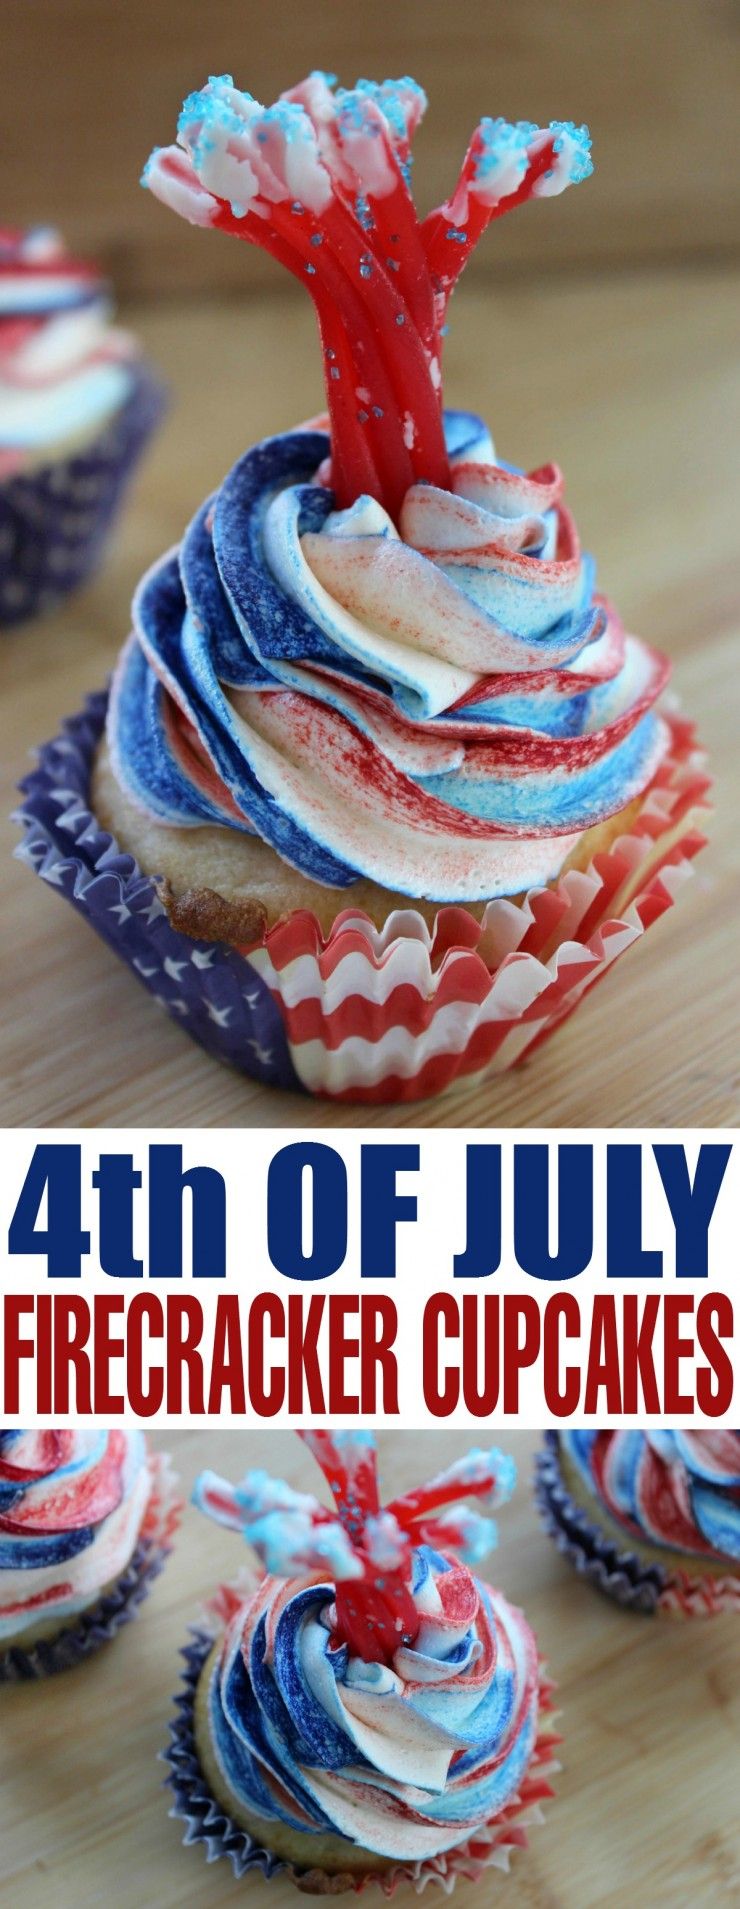 Celebrate American Independence day with these delightful Fourth of July Firecracker Cupcakes!